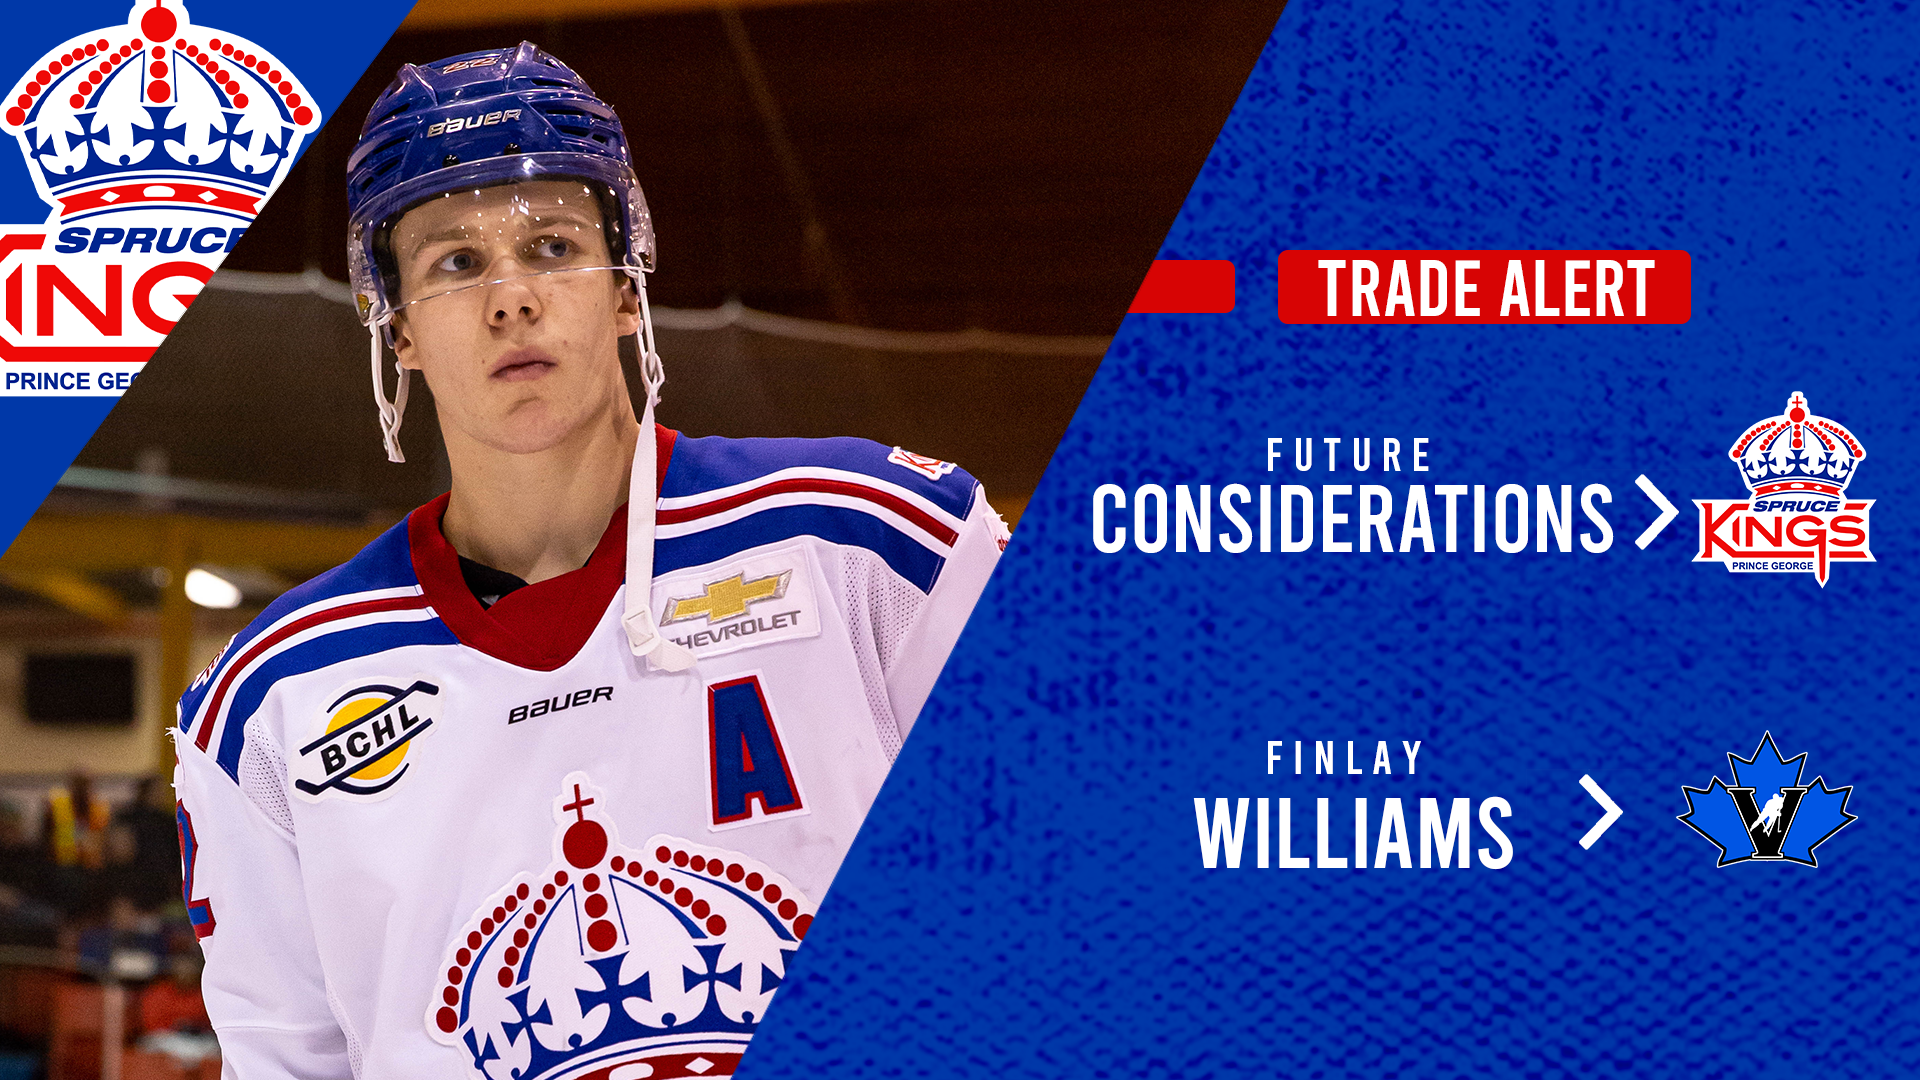 Spruce Kings deal Williams to Penticton for future considerations